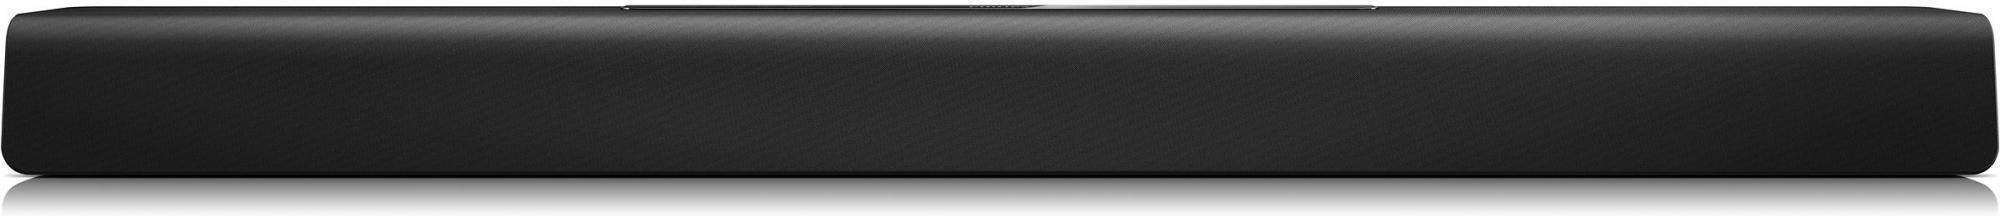 Philips HTL2101A